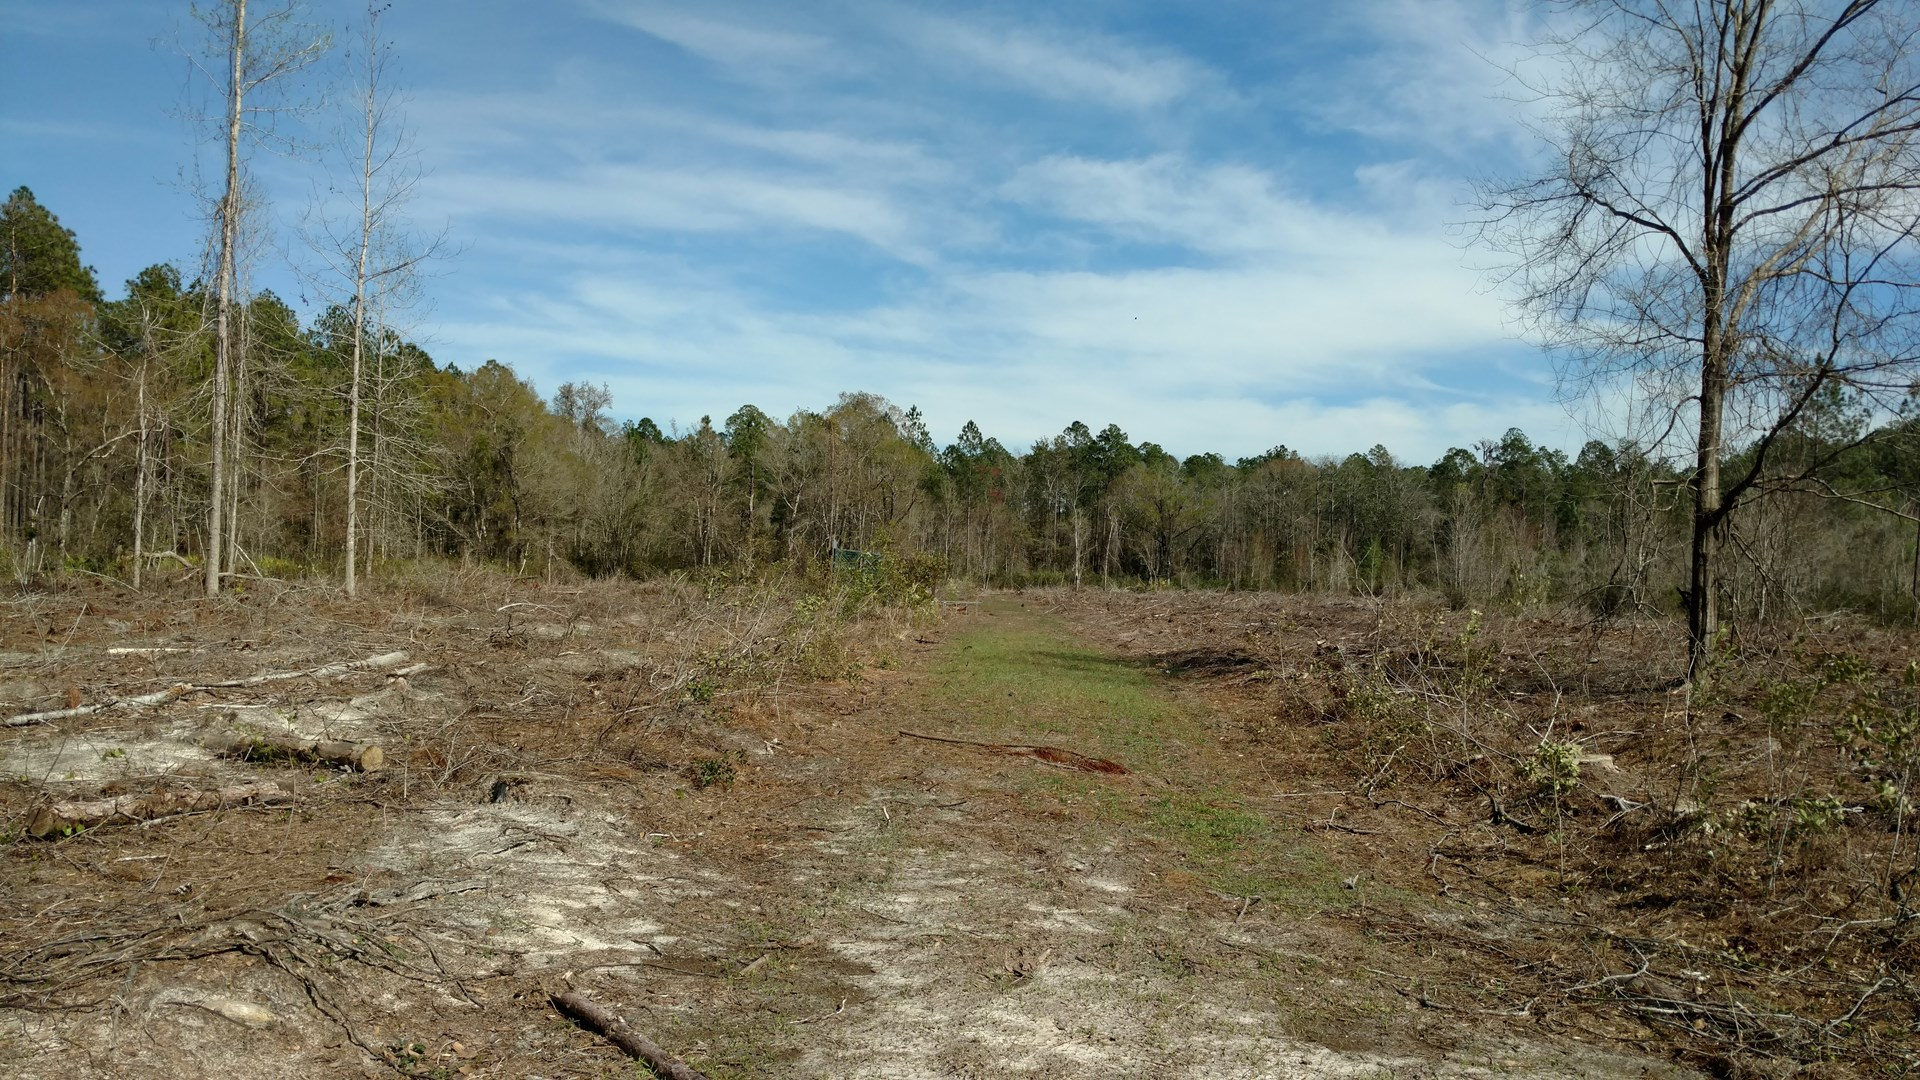 20 ACRES FOR SALE IN OSCEOLA FOREST